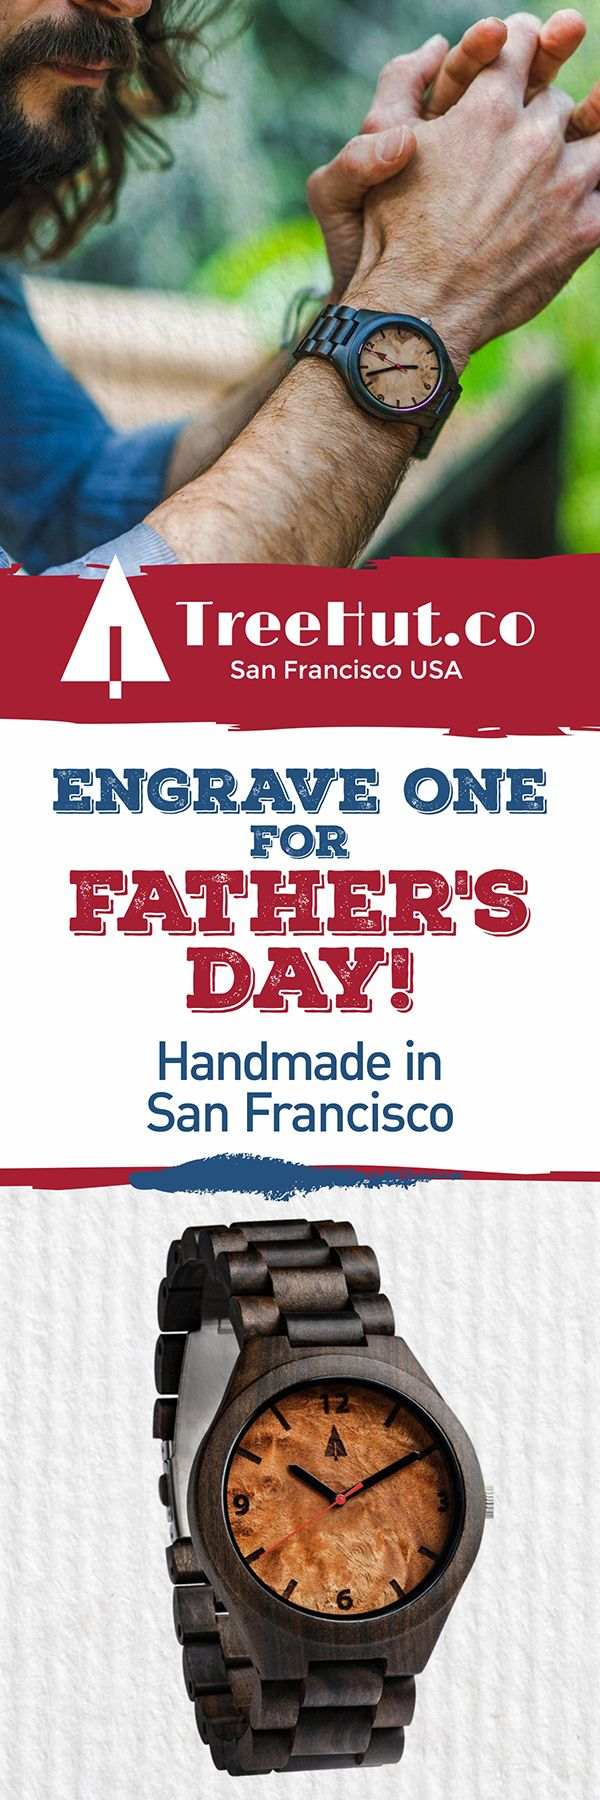 For Father's Day! Handcrafted in San Francisco. Nature-inspired designs that make the perfect #gift for your special ones! See the full collection at Treehut Co.